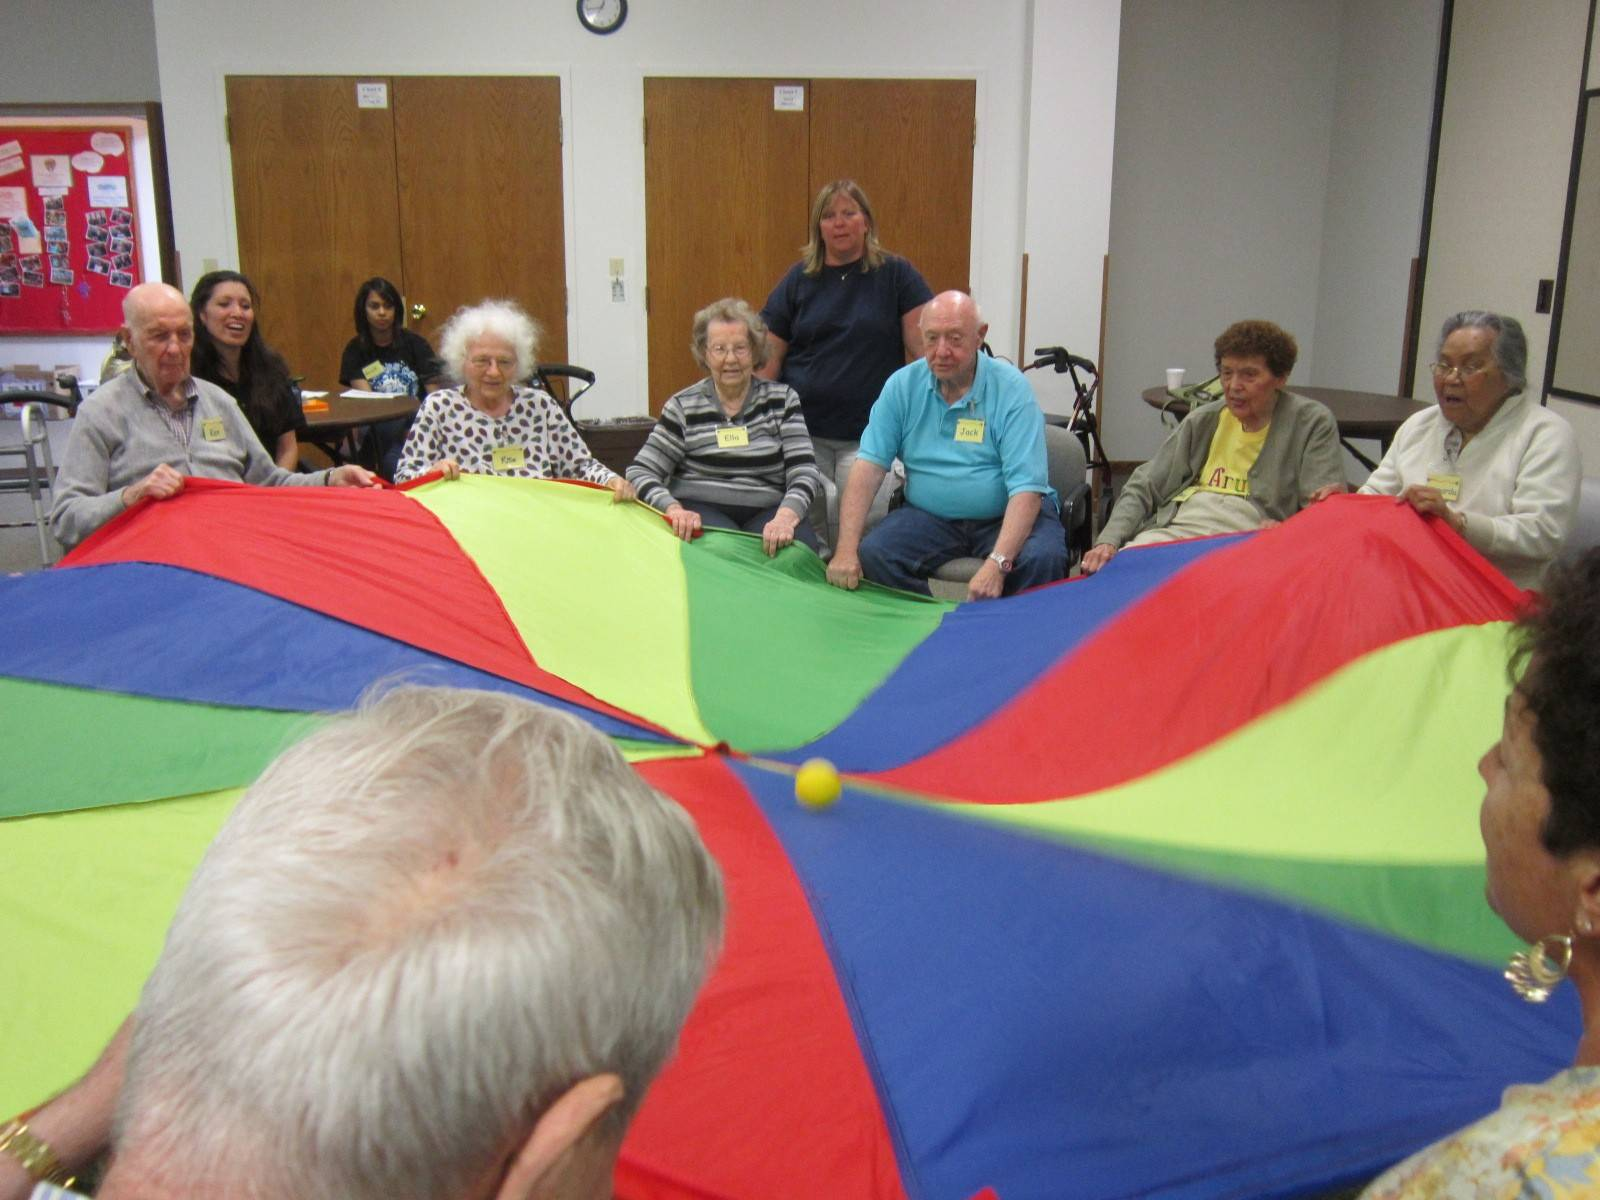 Participants take part in one of the many group activities at A Caring Place in Elk Grove Village. While A Caring Place specializes in working with adults with mild cognitive and physical impairments, the program is open to all adults who want to stay active.